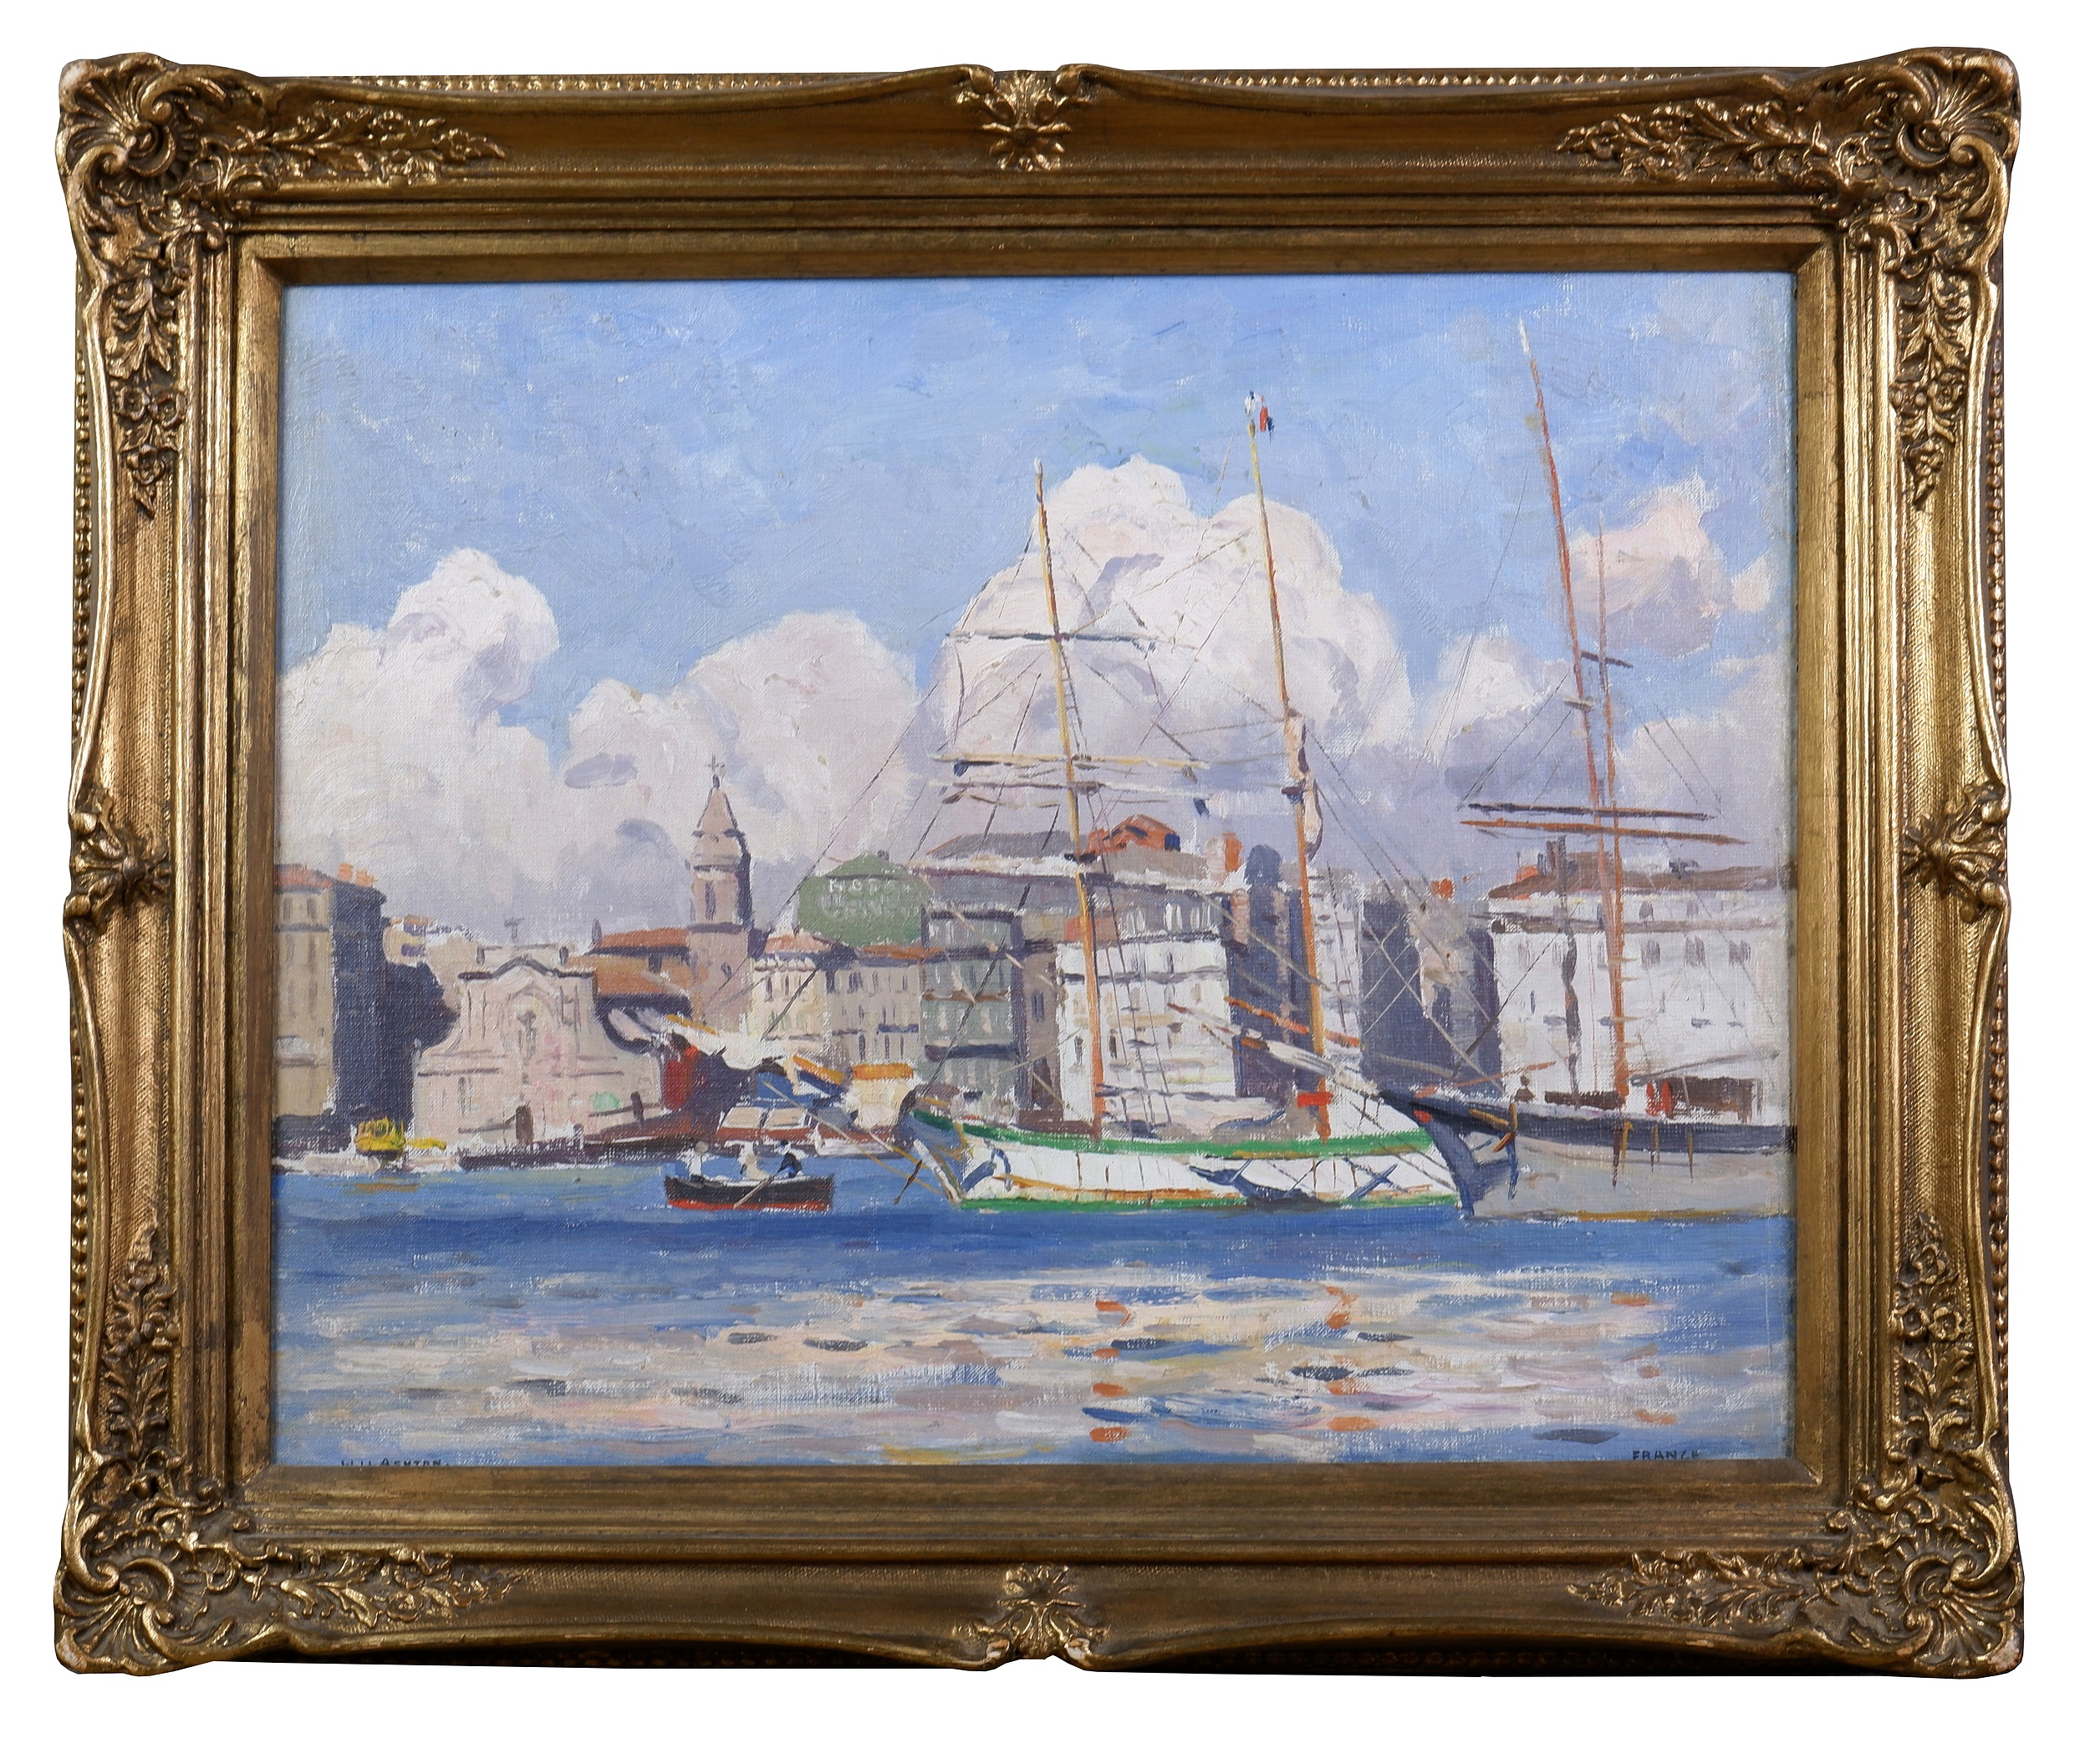 'Will Ashton (1881-1963), Summer Clouds, Marseille Harbour, Oil on Canvasboard, 35 x 45 cm'